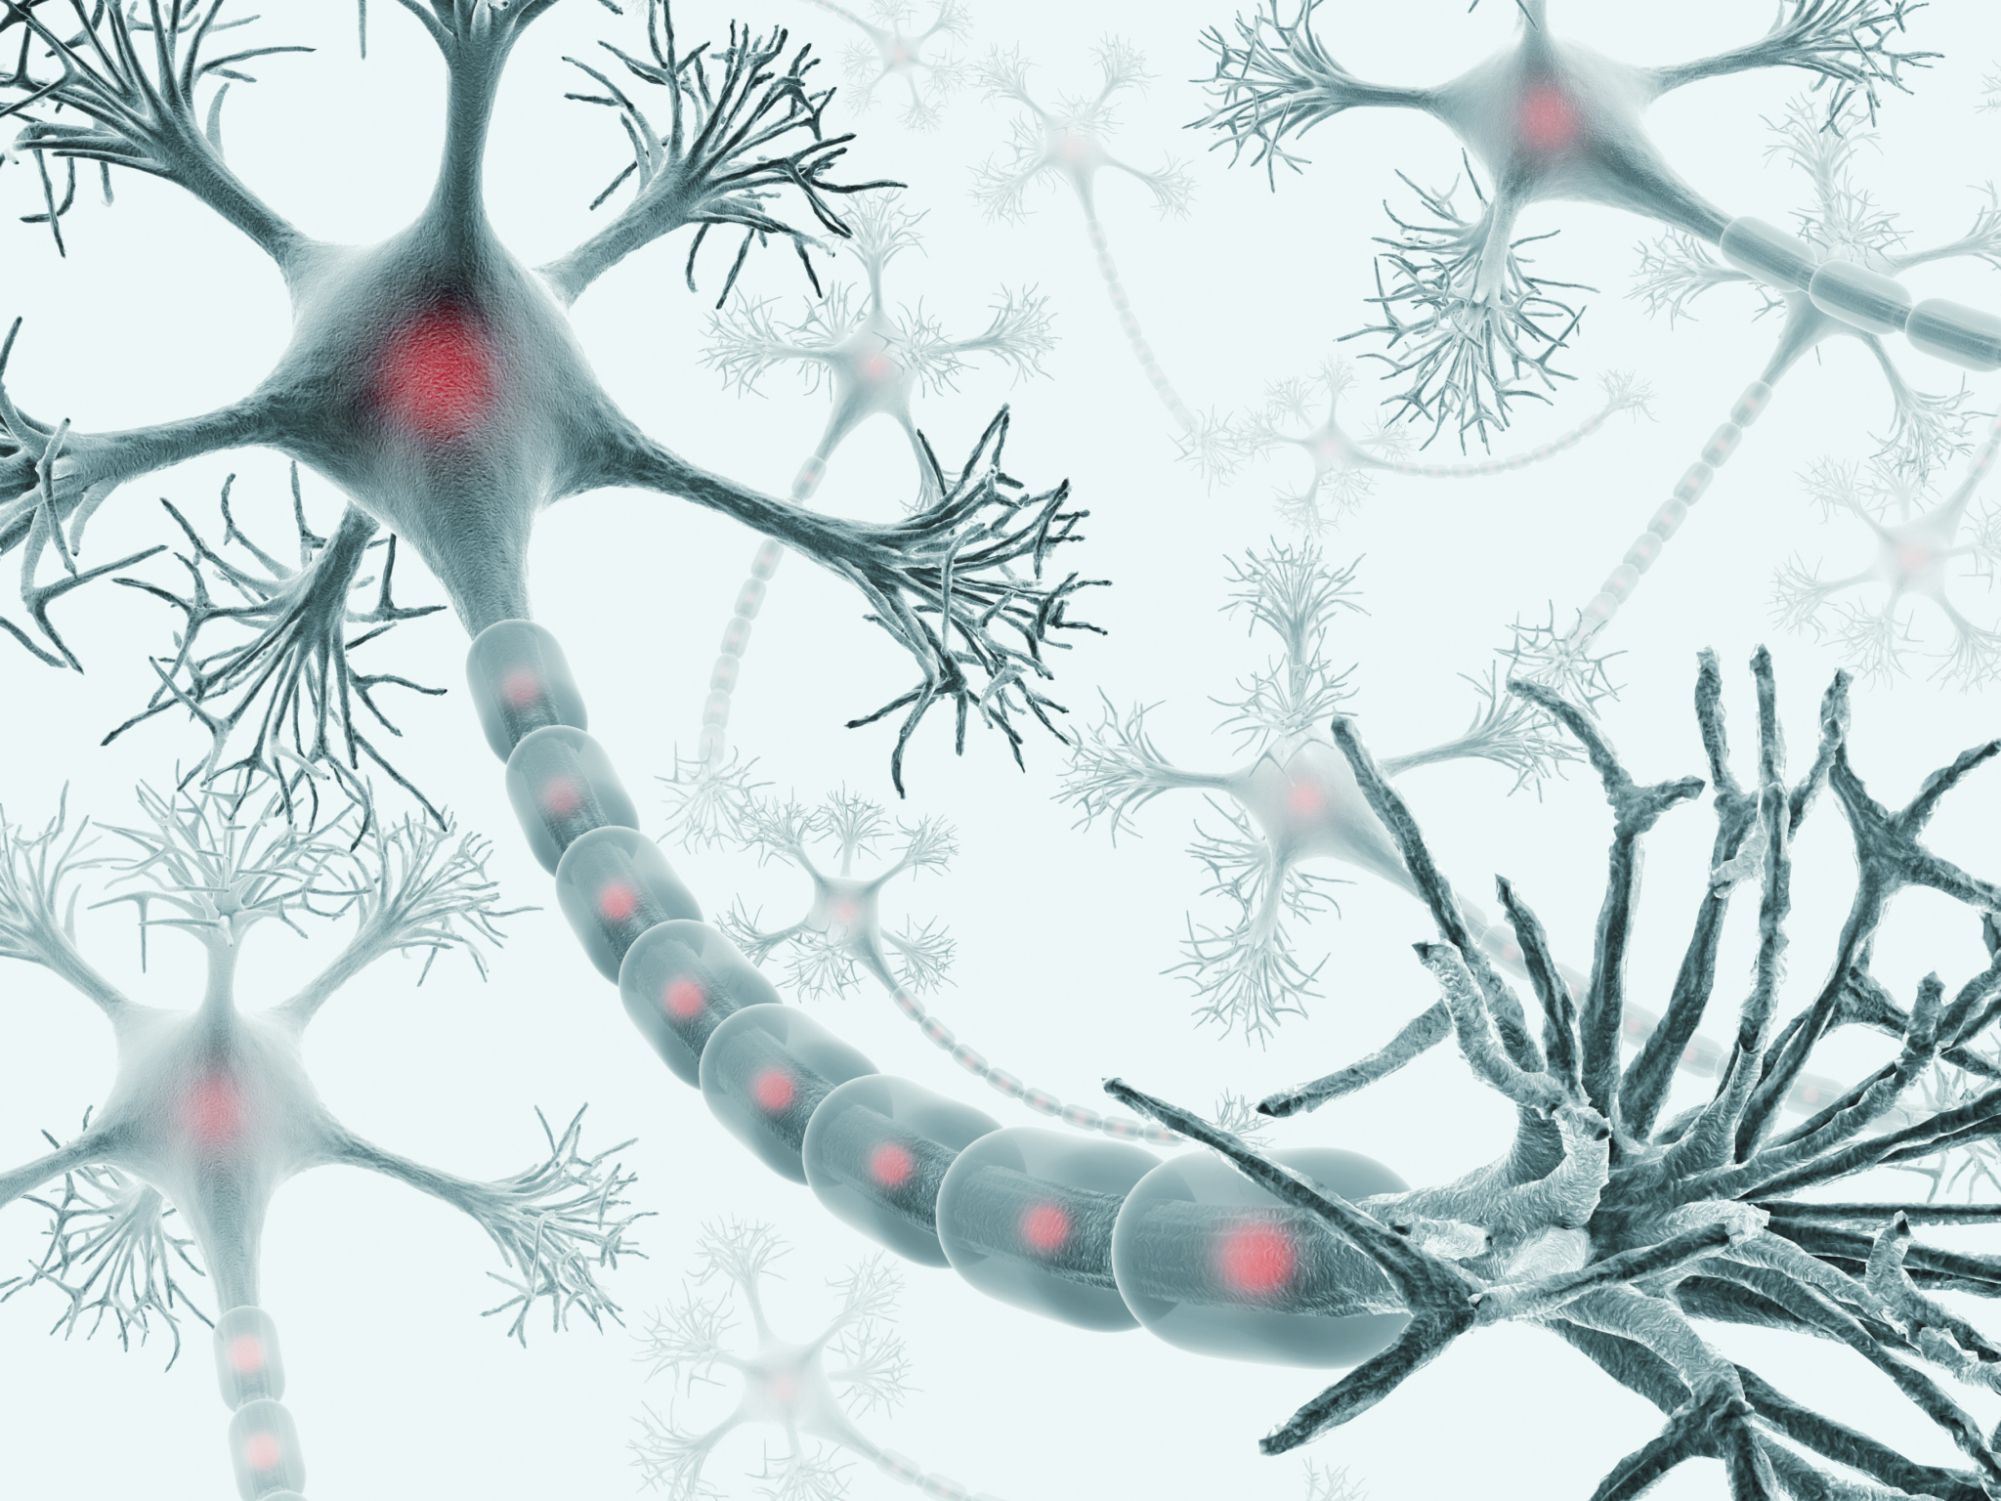 Understanding Neurons' Role in the Nervous System